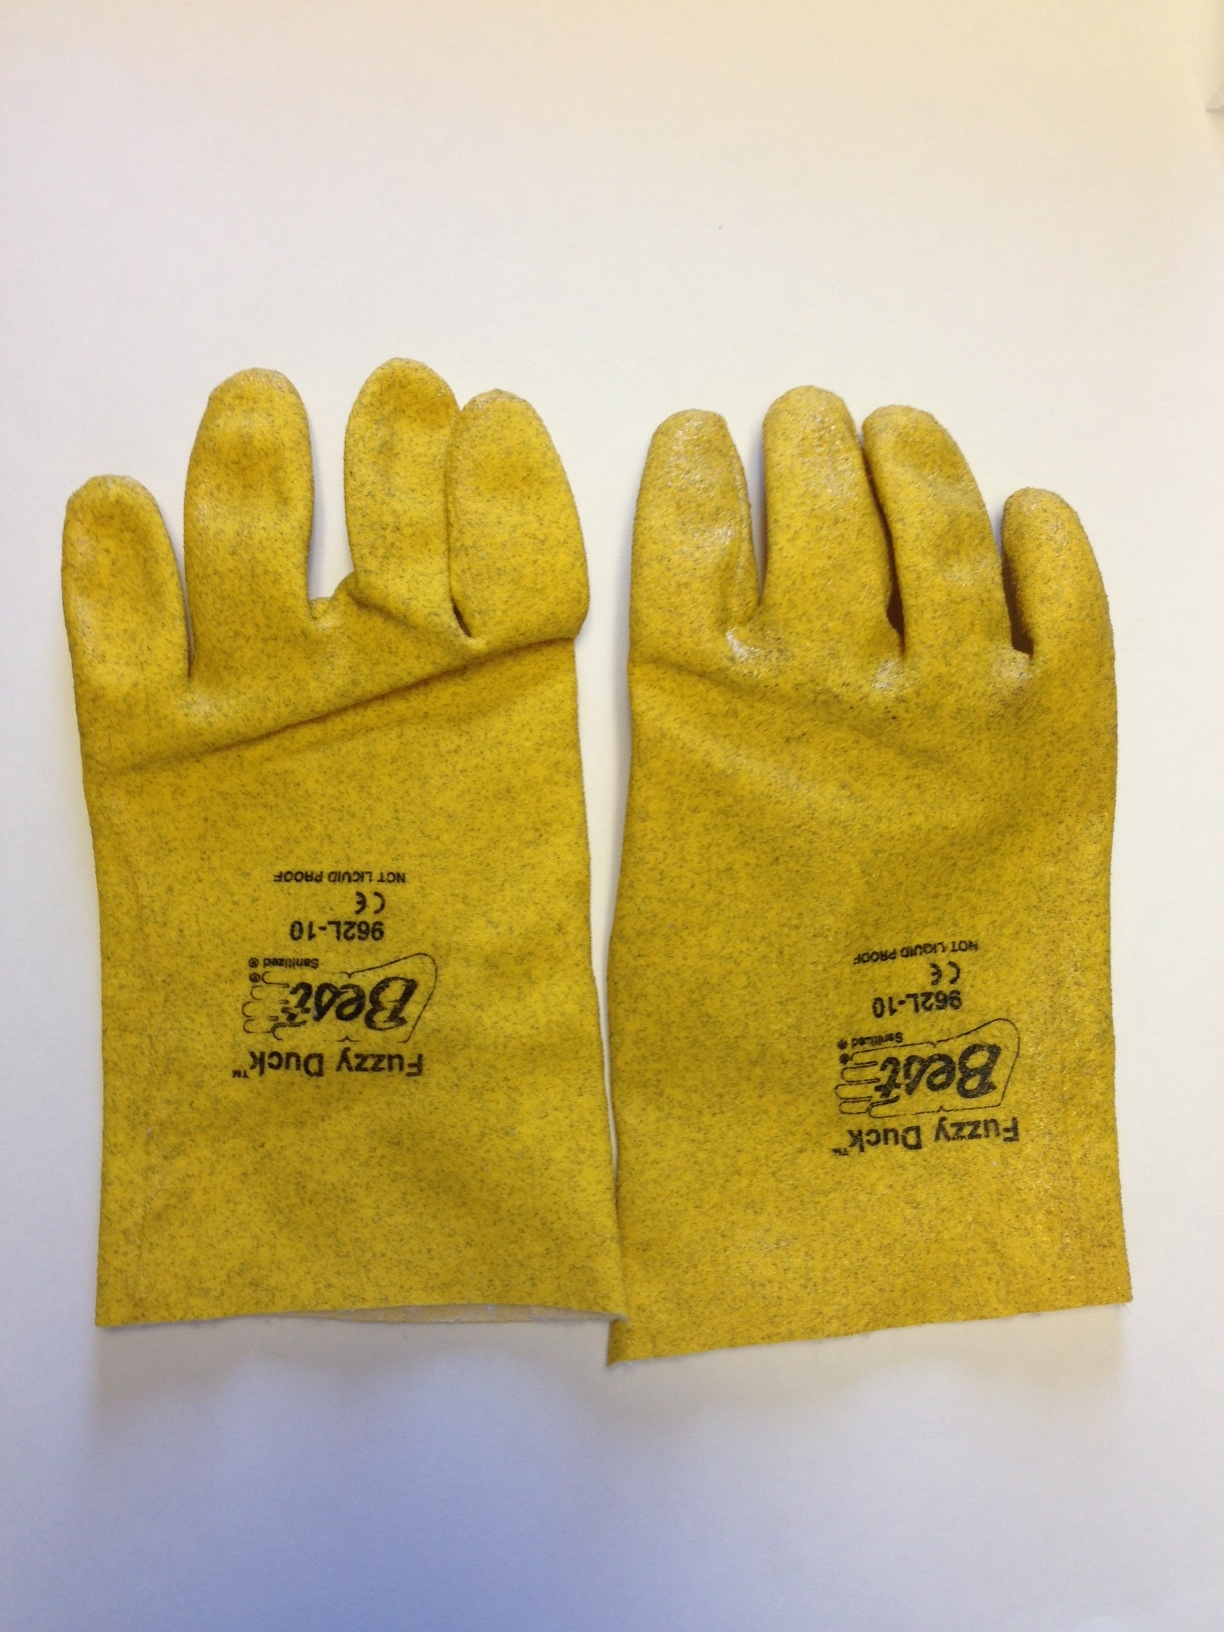 SHOWA Best Gloves Large Fuzzy Duck Heavy Duty